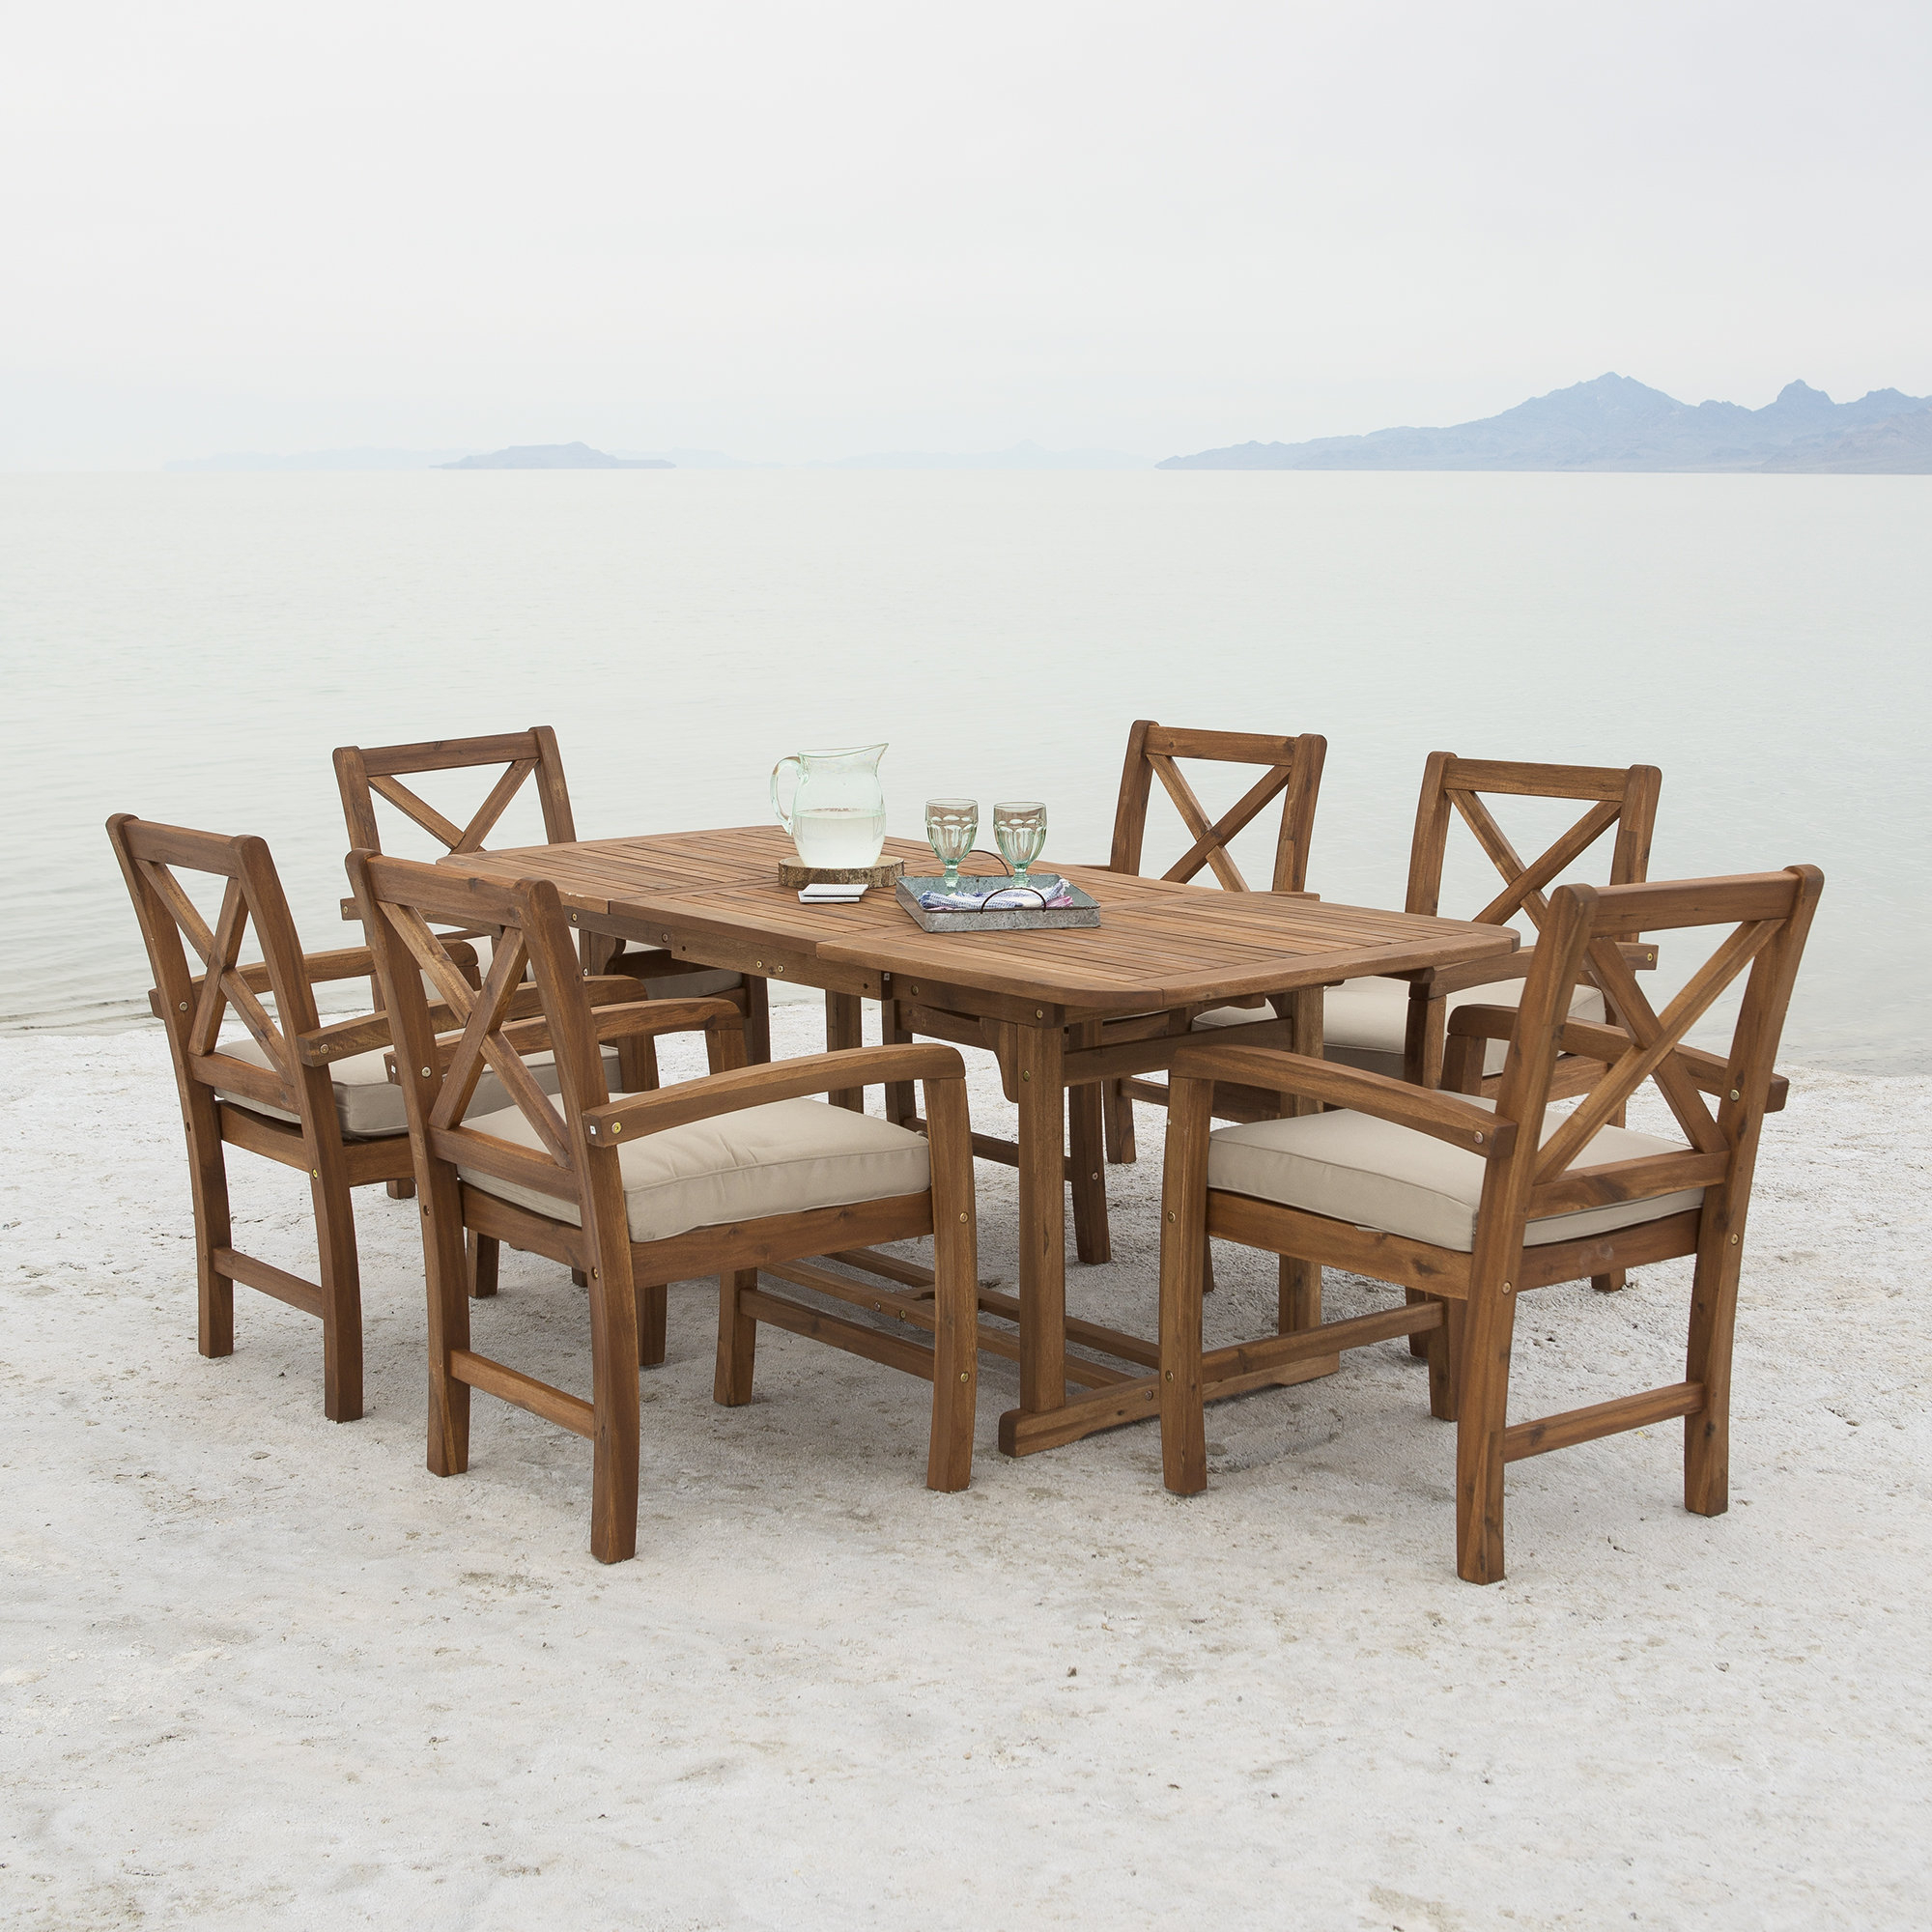 Most Recently Released Tim X Back Patio 7 Piece Dining Set With Cushions Inside Tim X Back Patio Loveseats With Cushions (View 11 of 20)